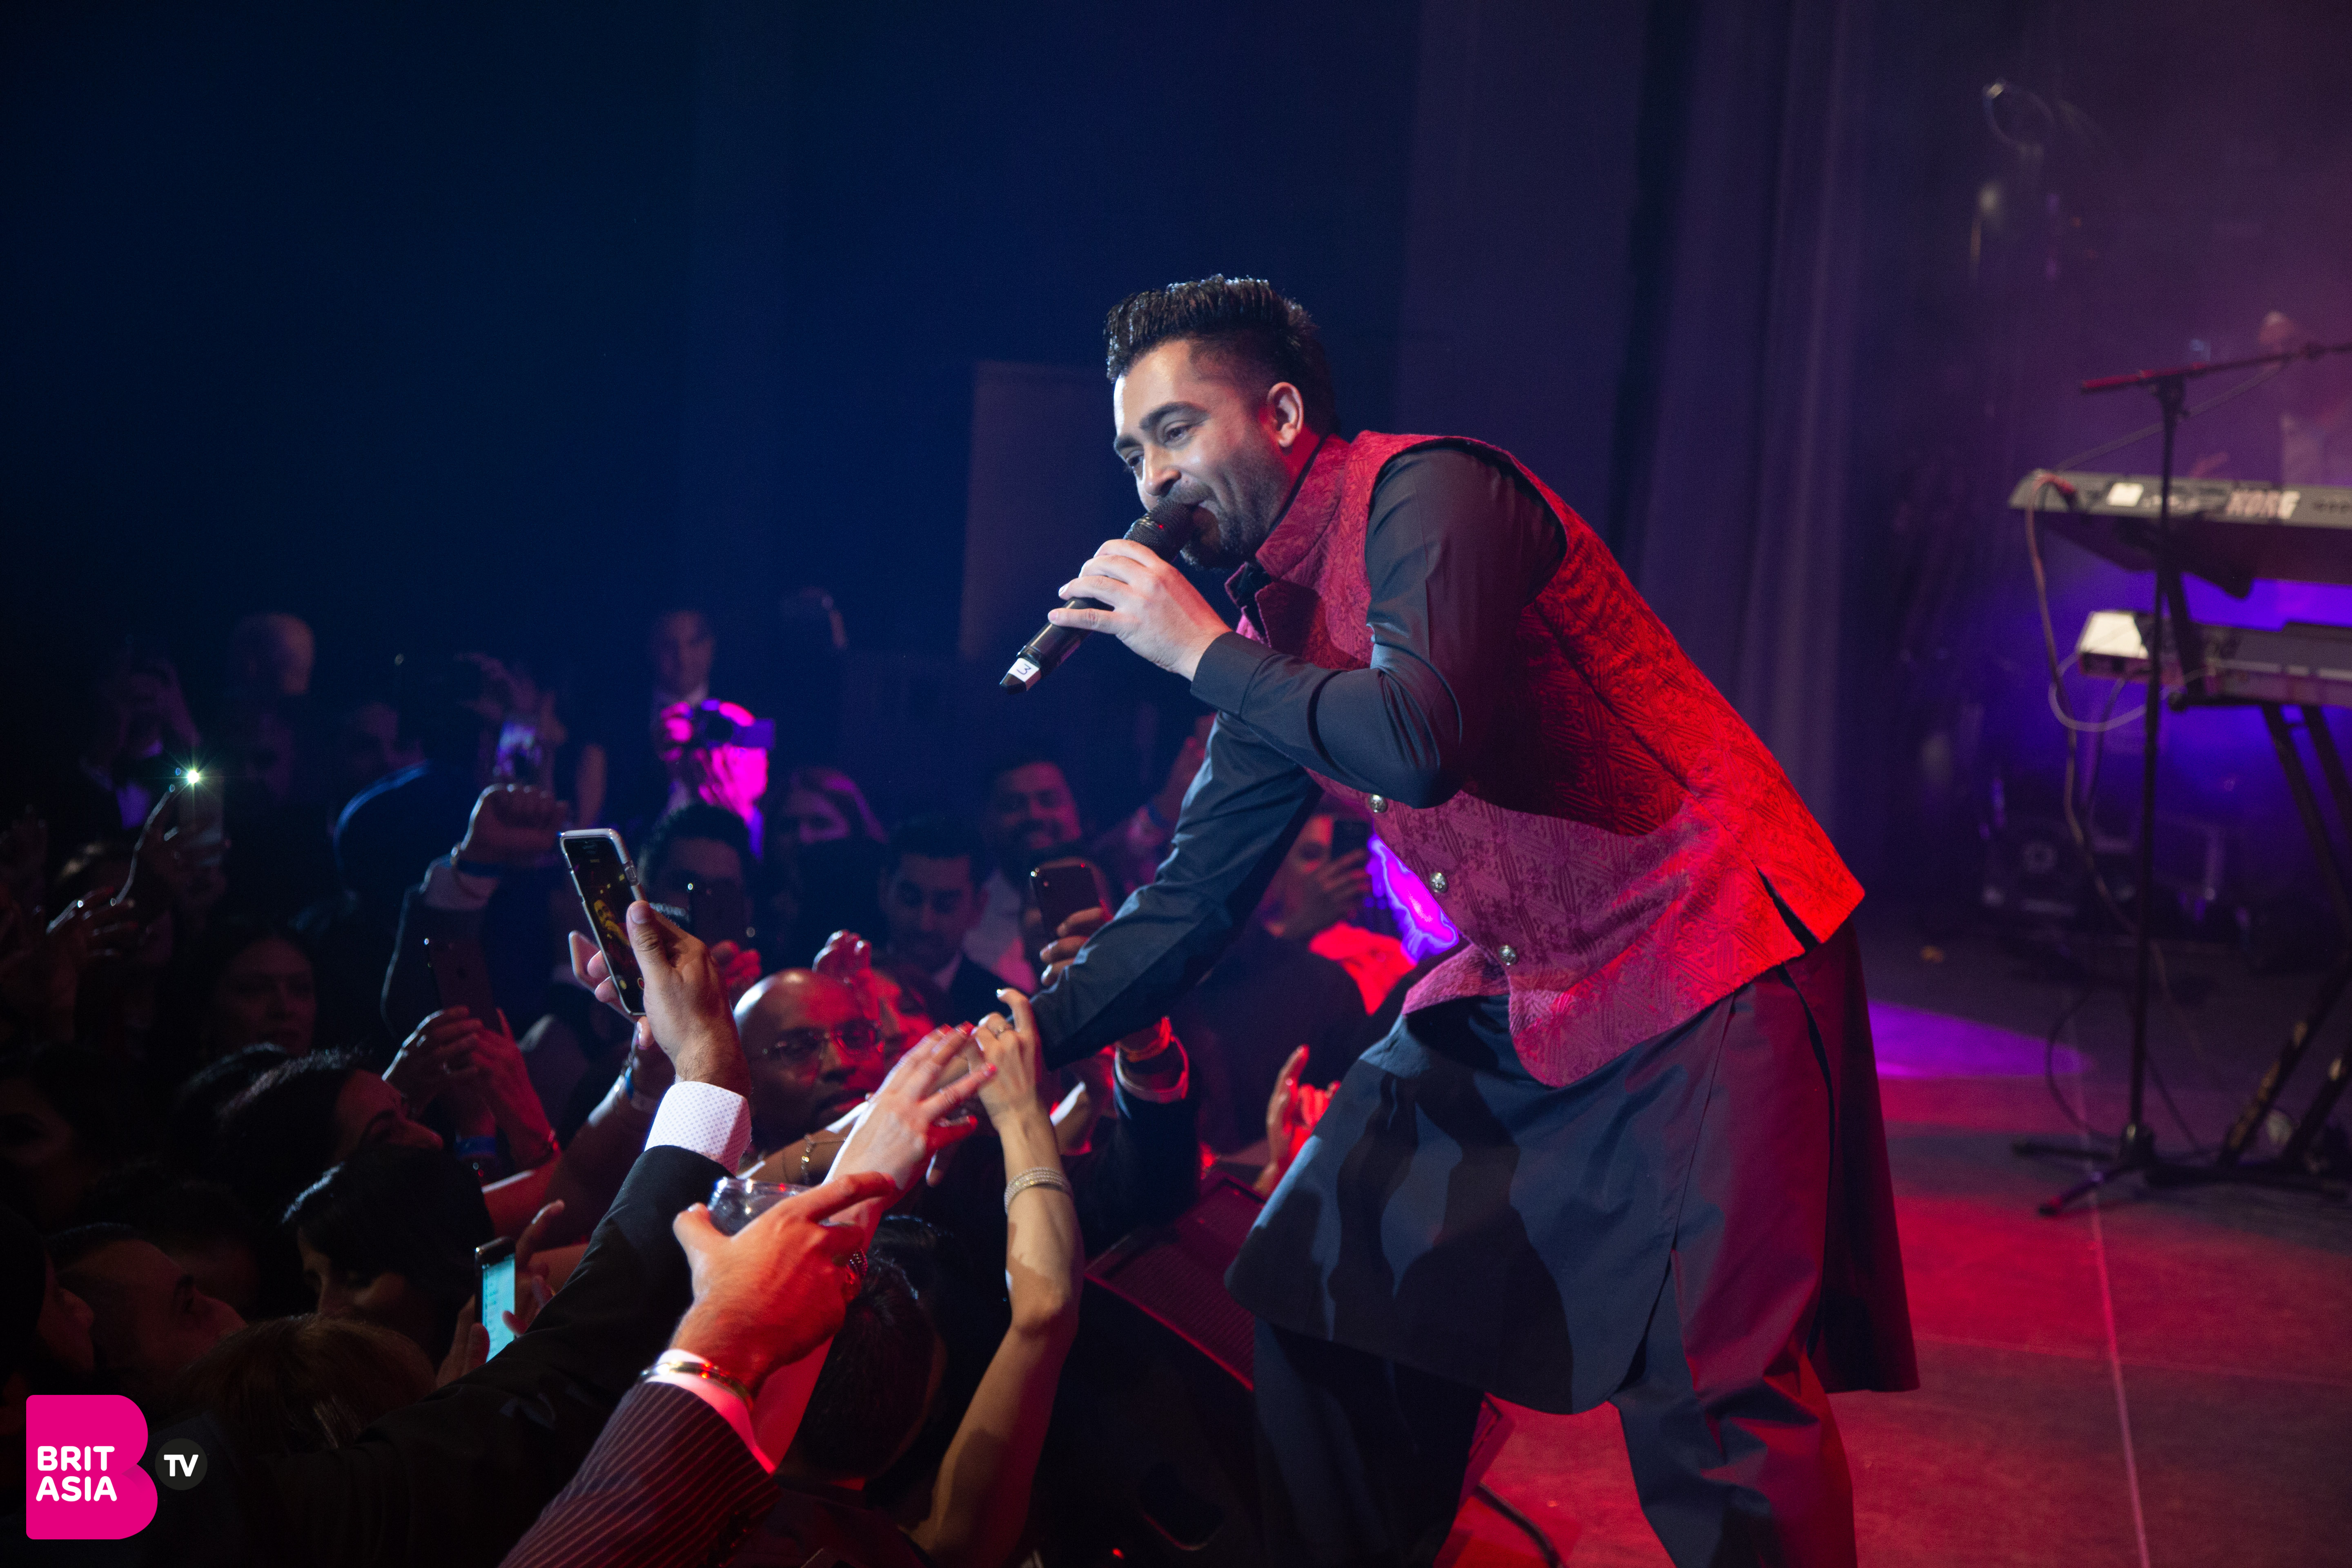 Sharry Mann performs at the PFA 2018